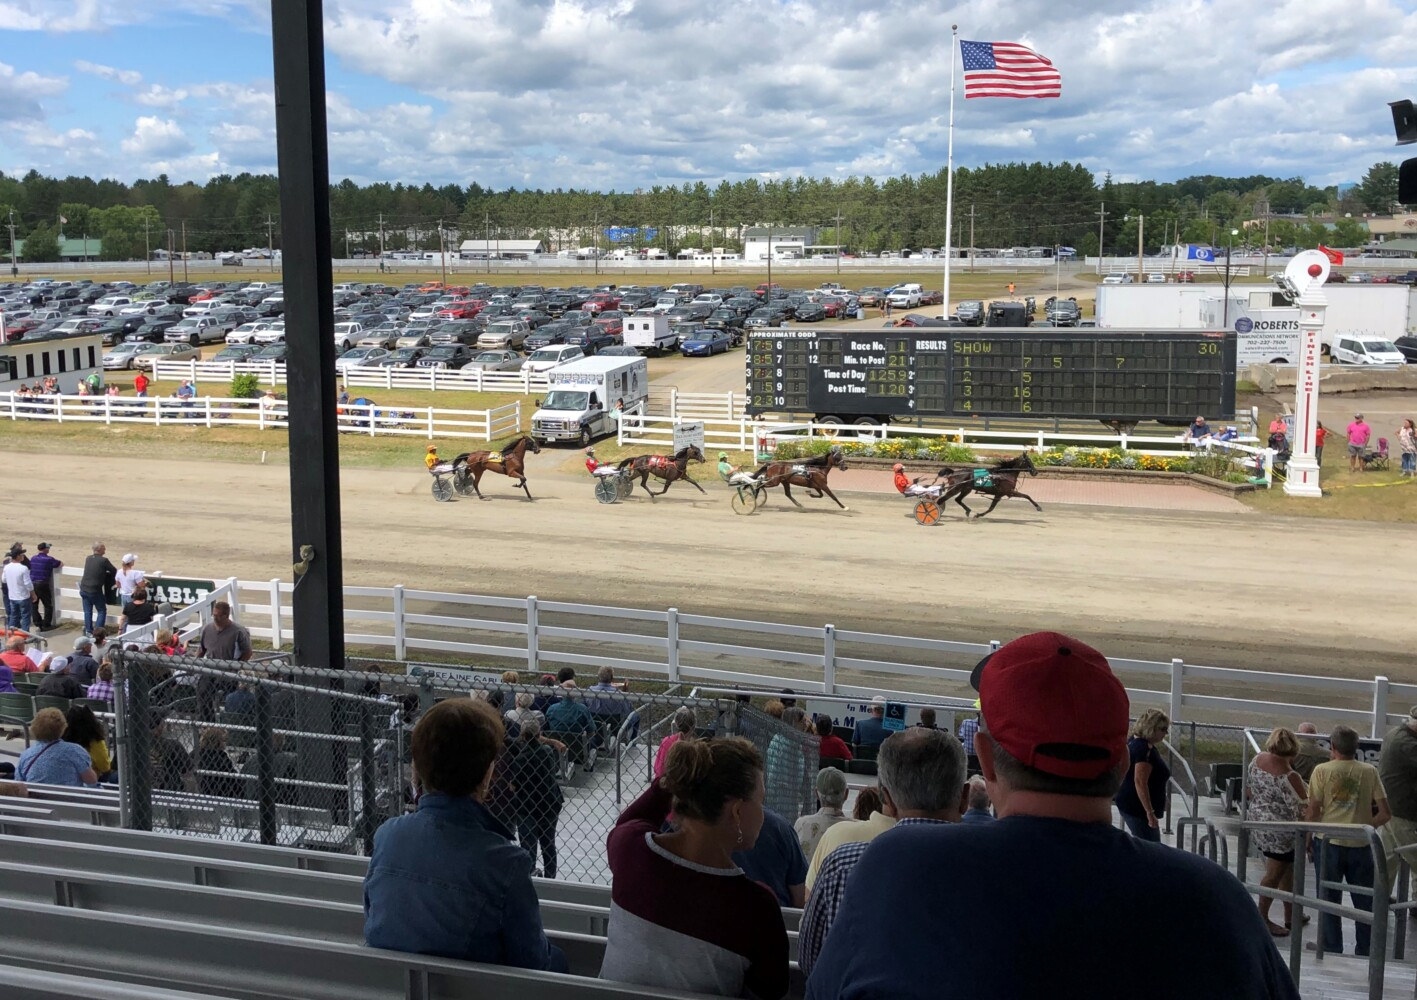 Harness racing kicks off horse betting Sunday at Skowhegan Fair - CentralMaine.com